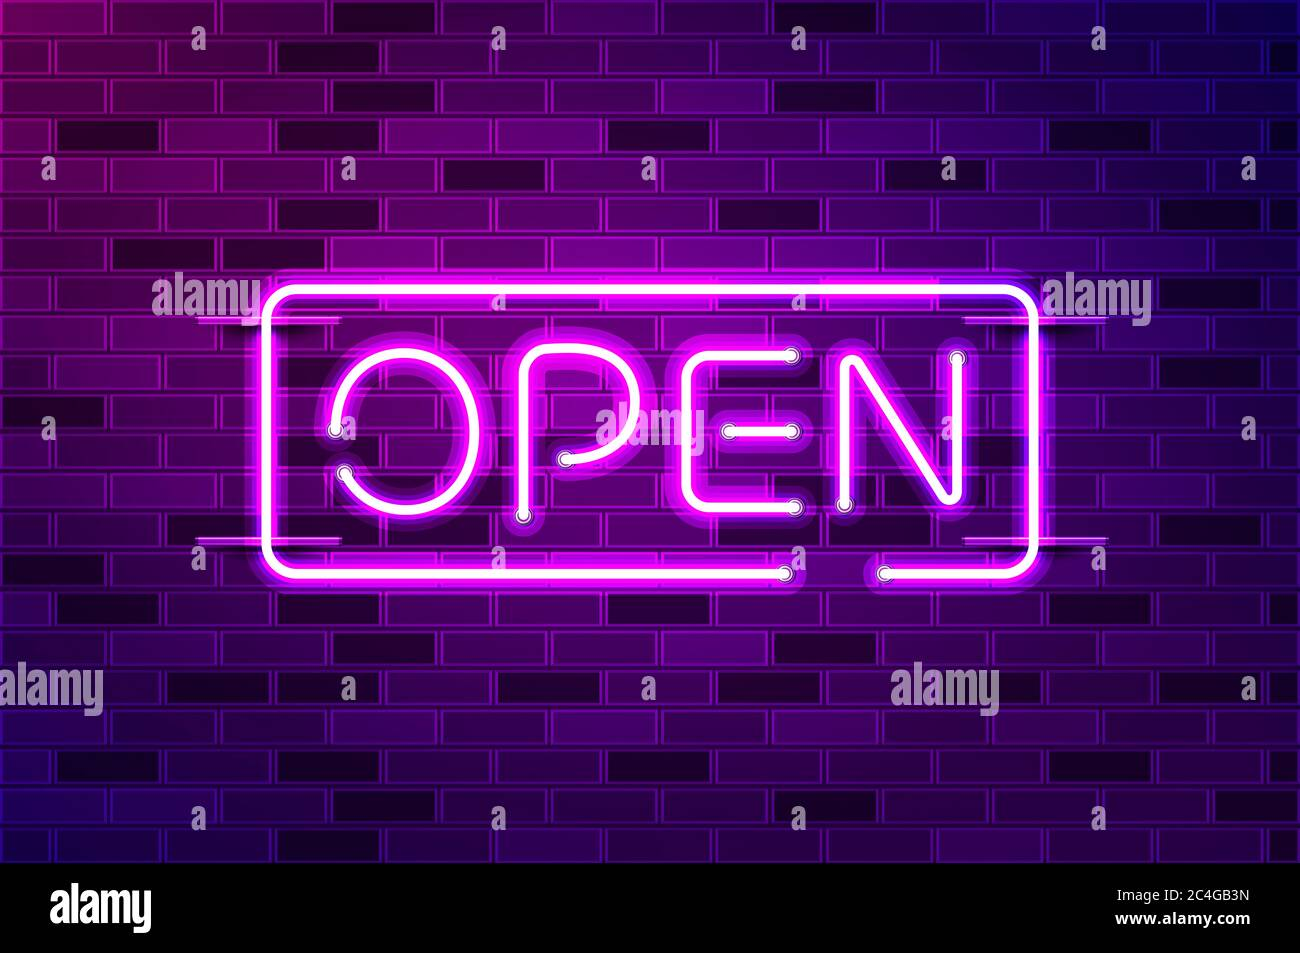 Open Glowing Neon Sign Or Led Strip Light Realistic Illustration Purple Brick Wall Violet Glow Metal Holders Stock Photo Alamy